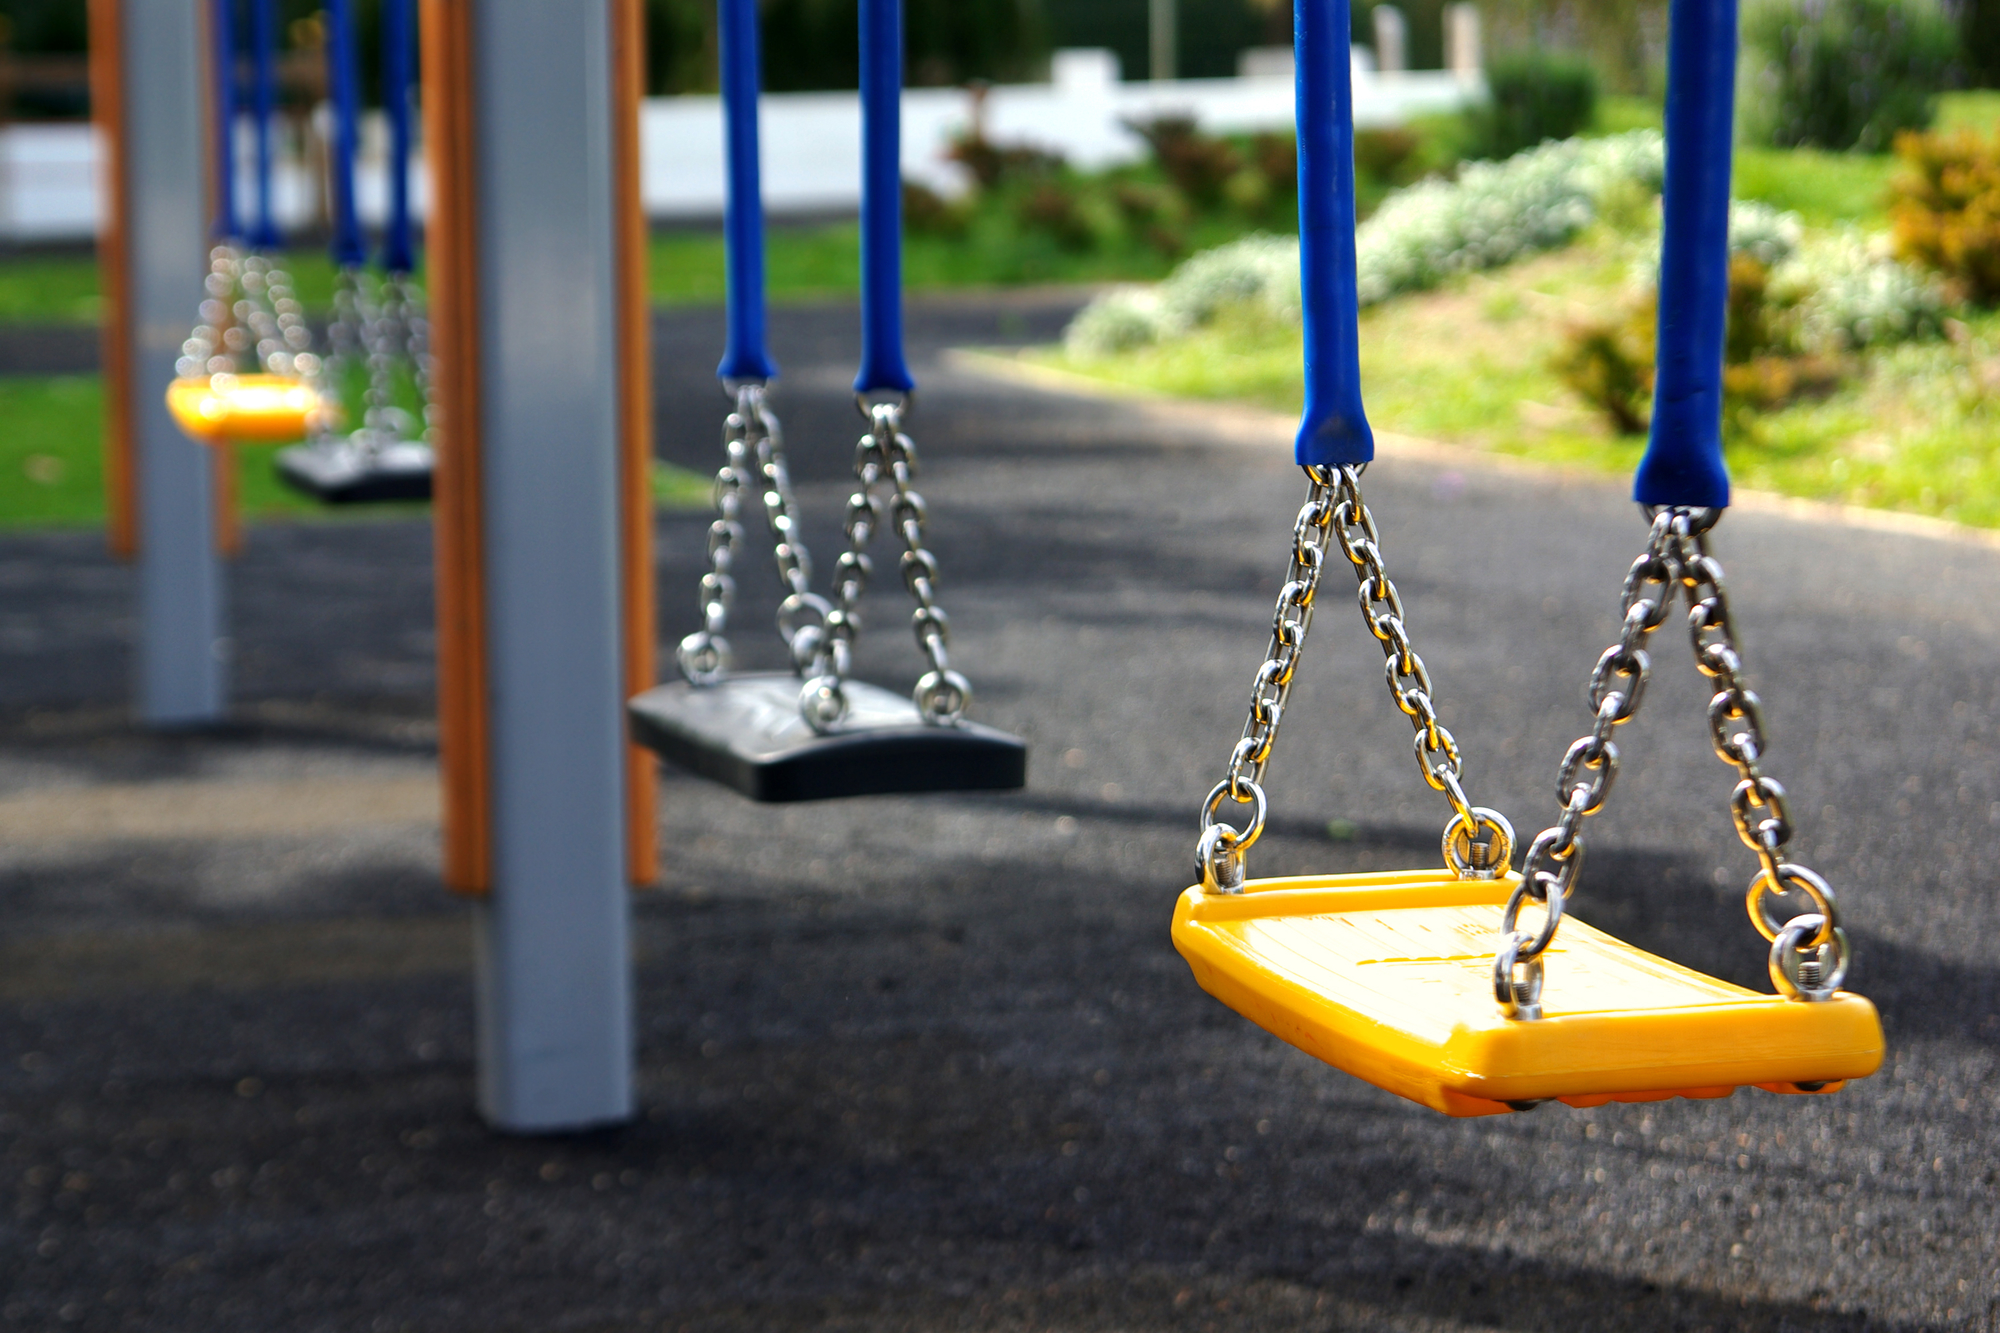 A swing set for kids